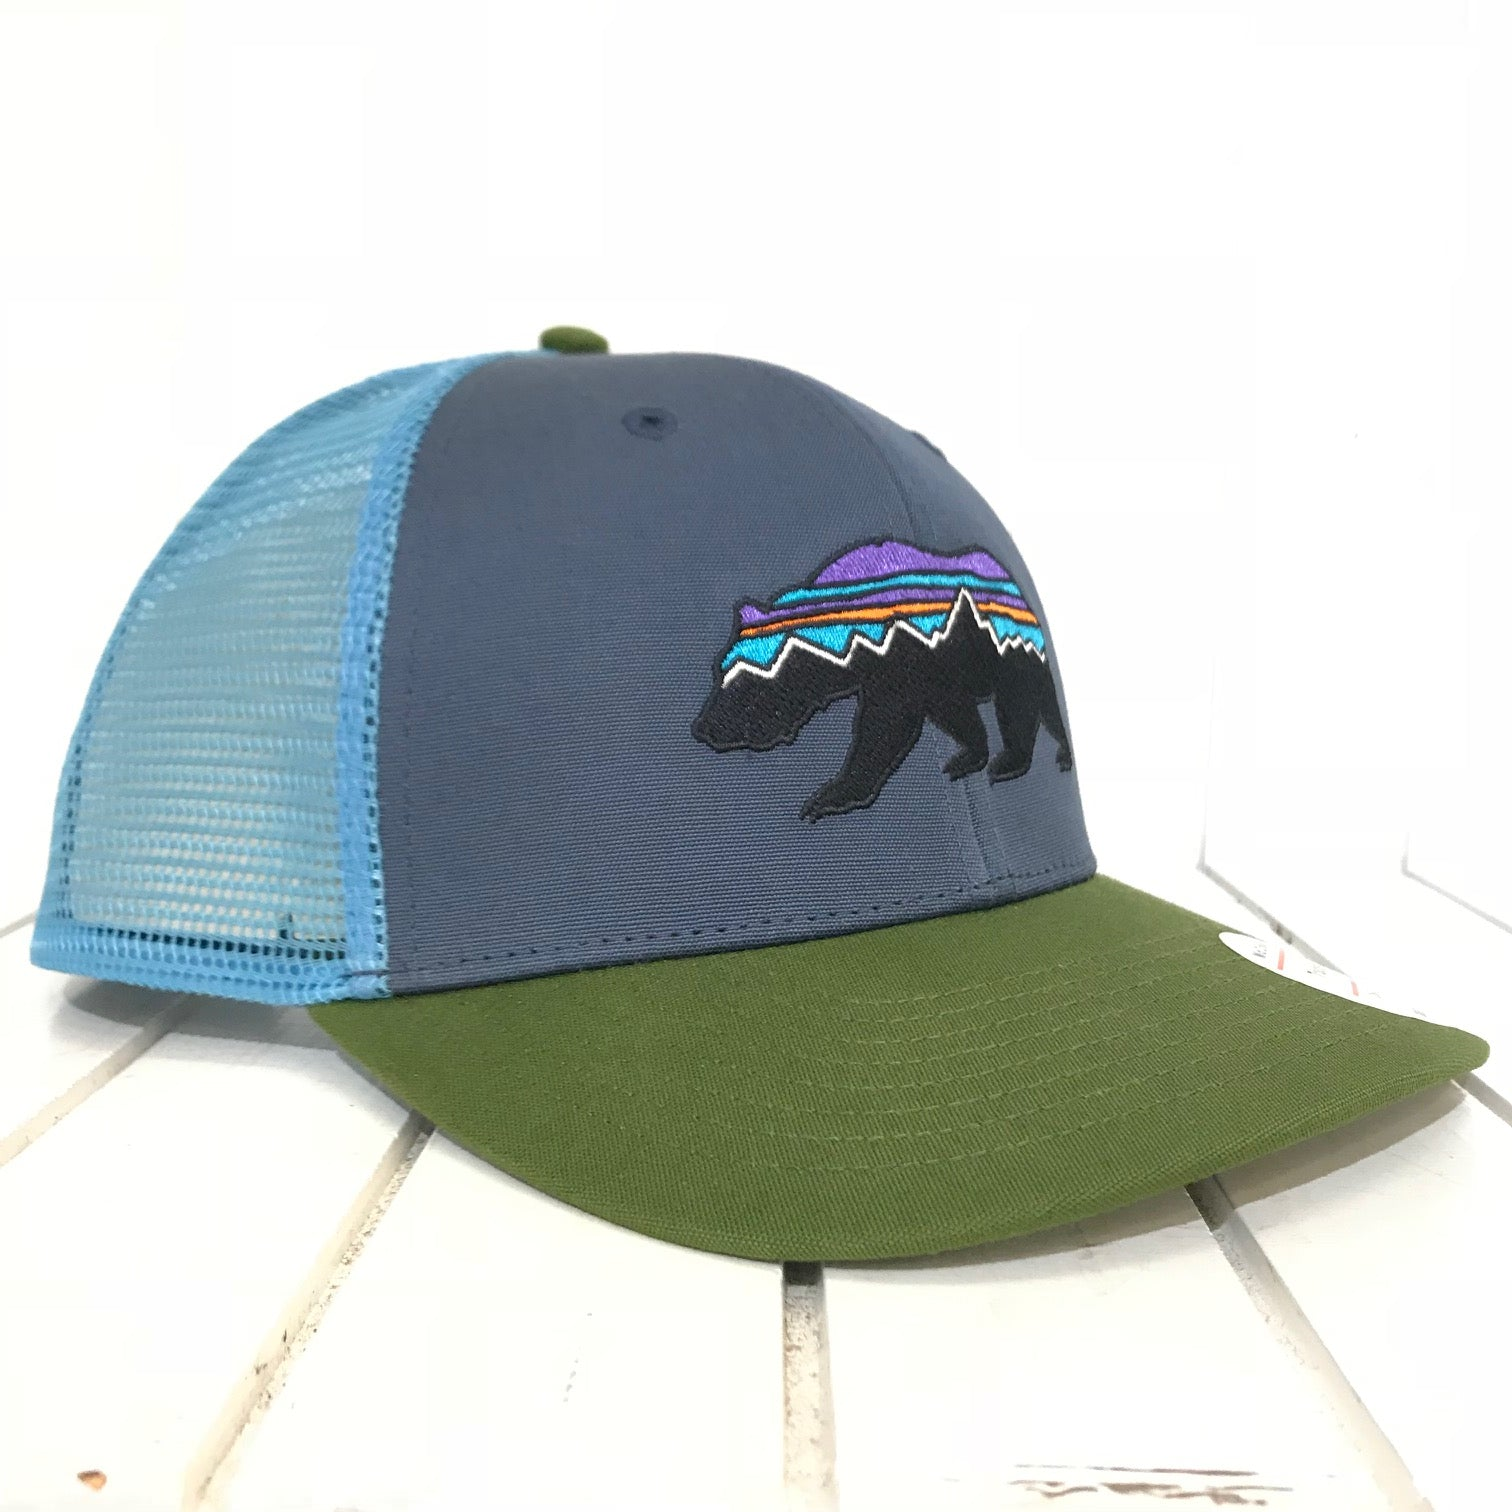 5e8c8ba9 Men's Patagonia | Fitz Roy Bear Trucker Hat | Dolomite Blue - FL Crooks